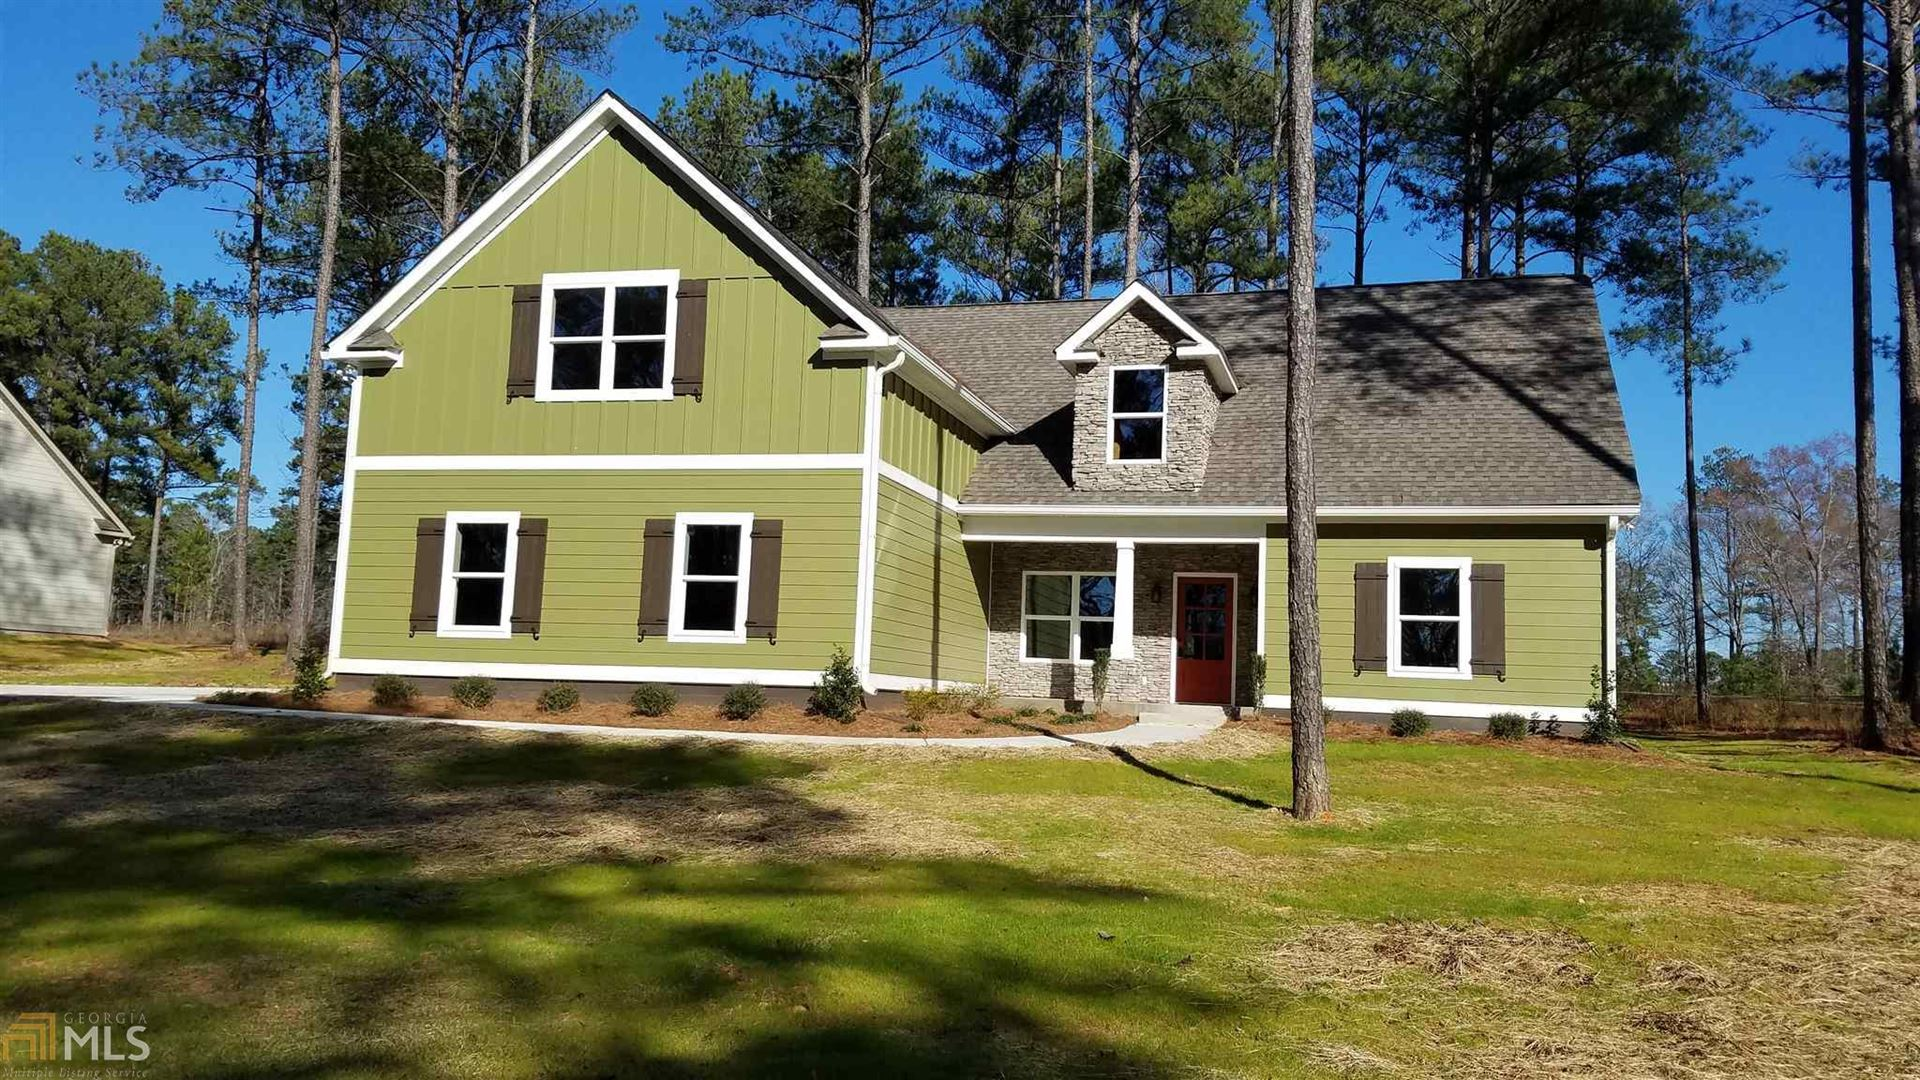 654 Riverside Estates, Lanett, AL 36863 - #: 8566572